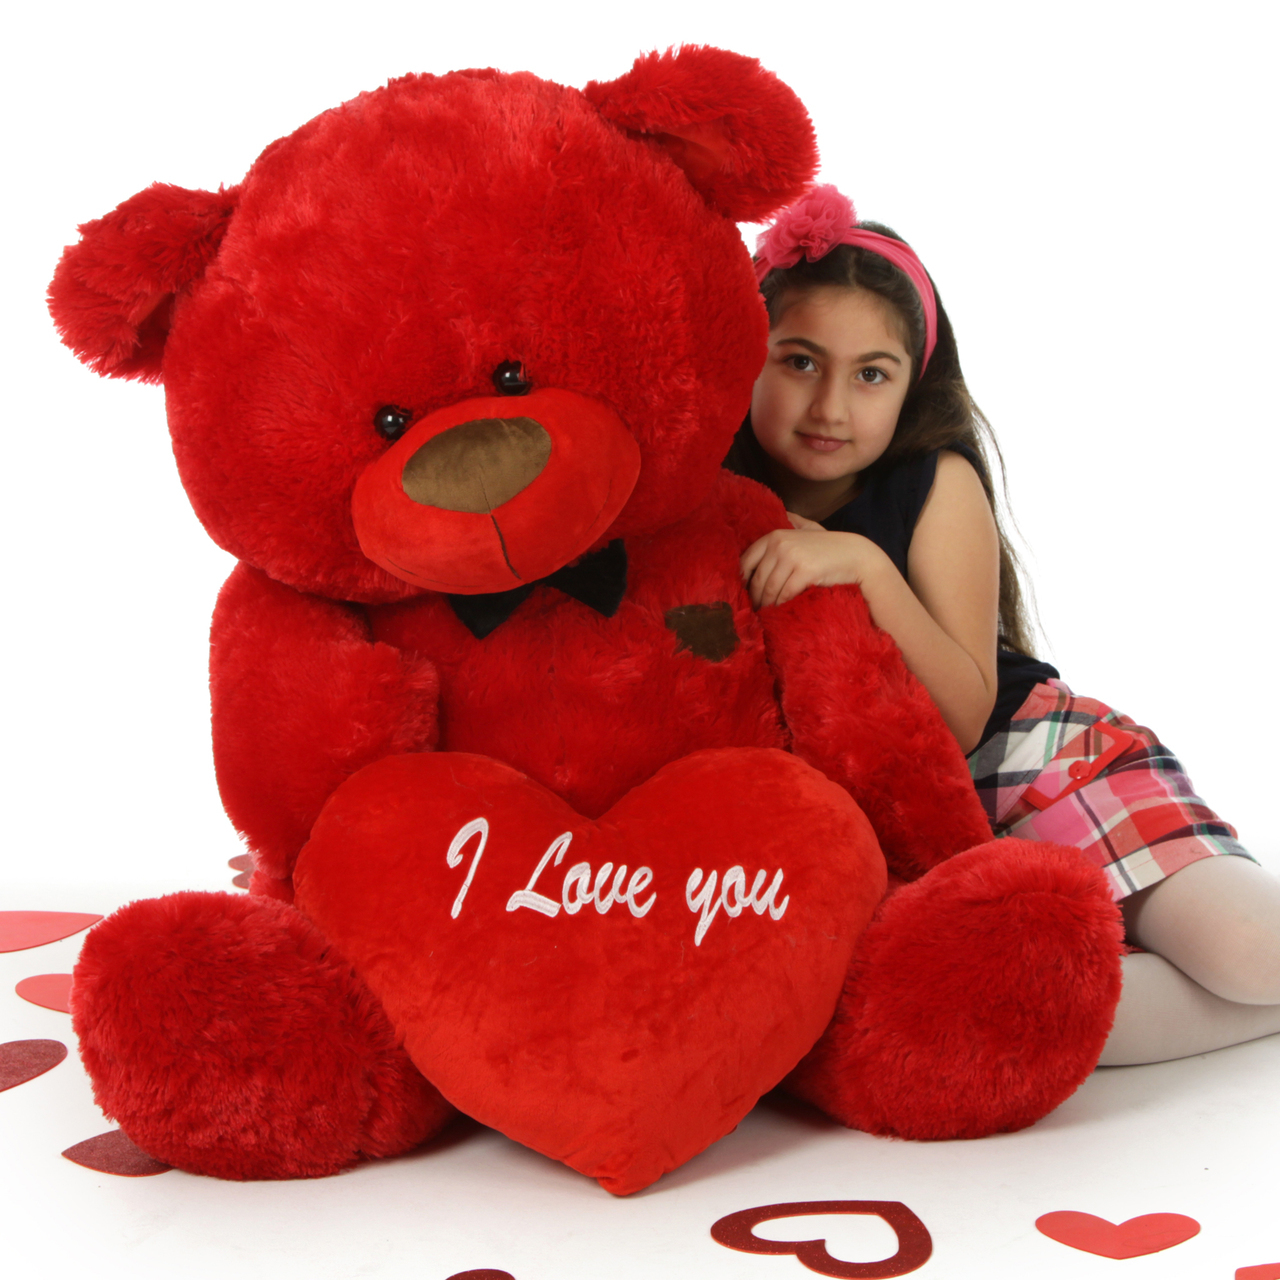 pictures of sweet teddy bears